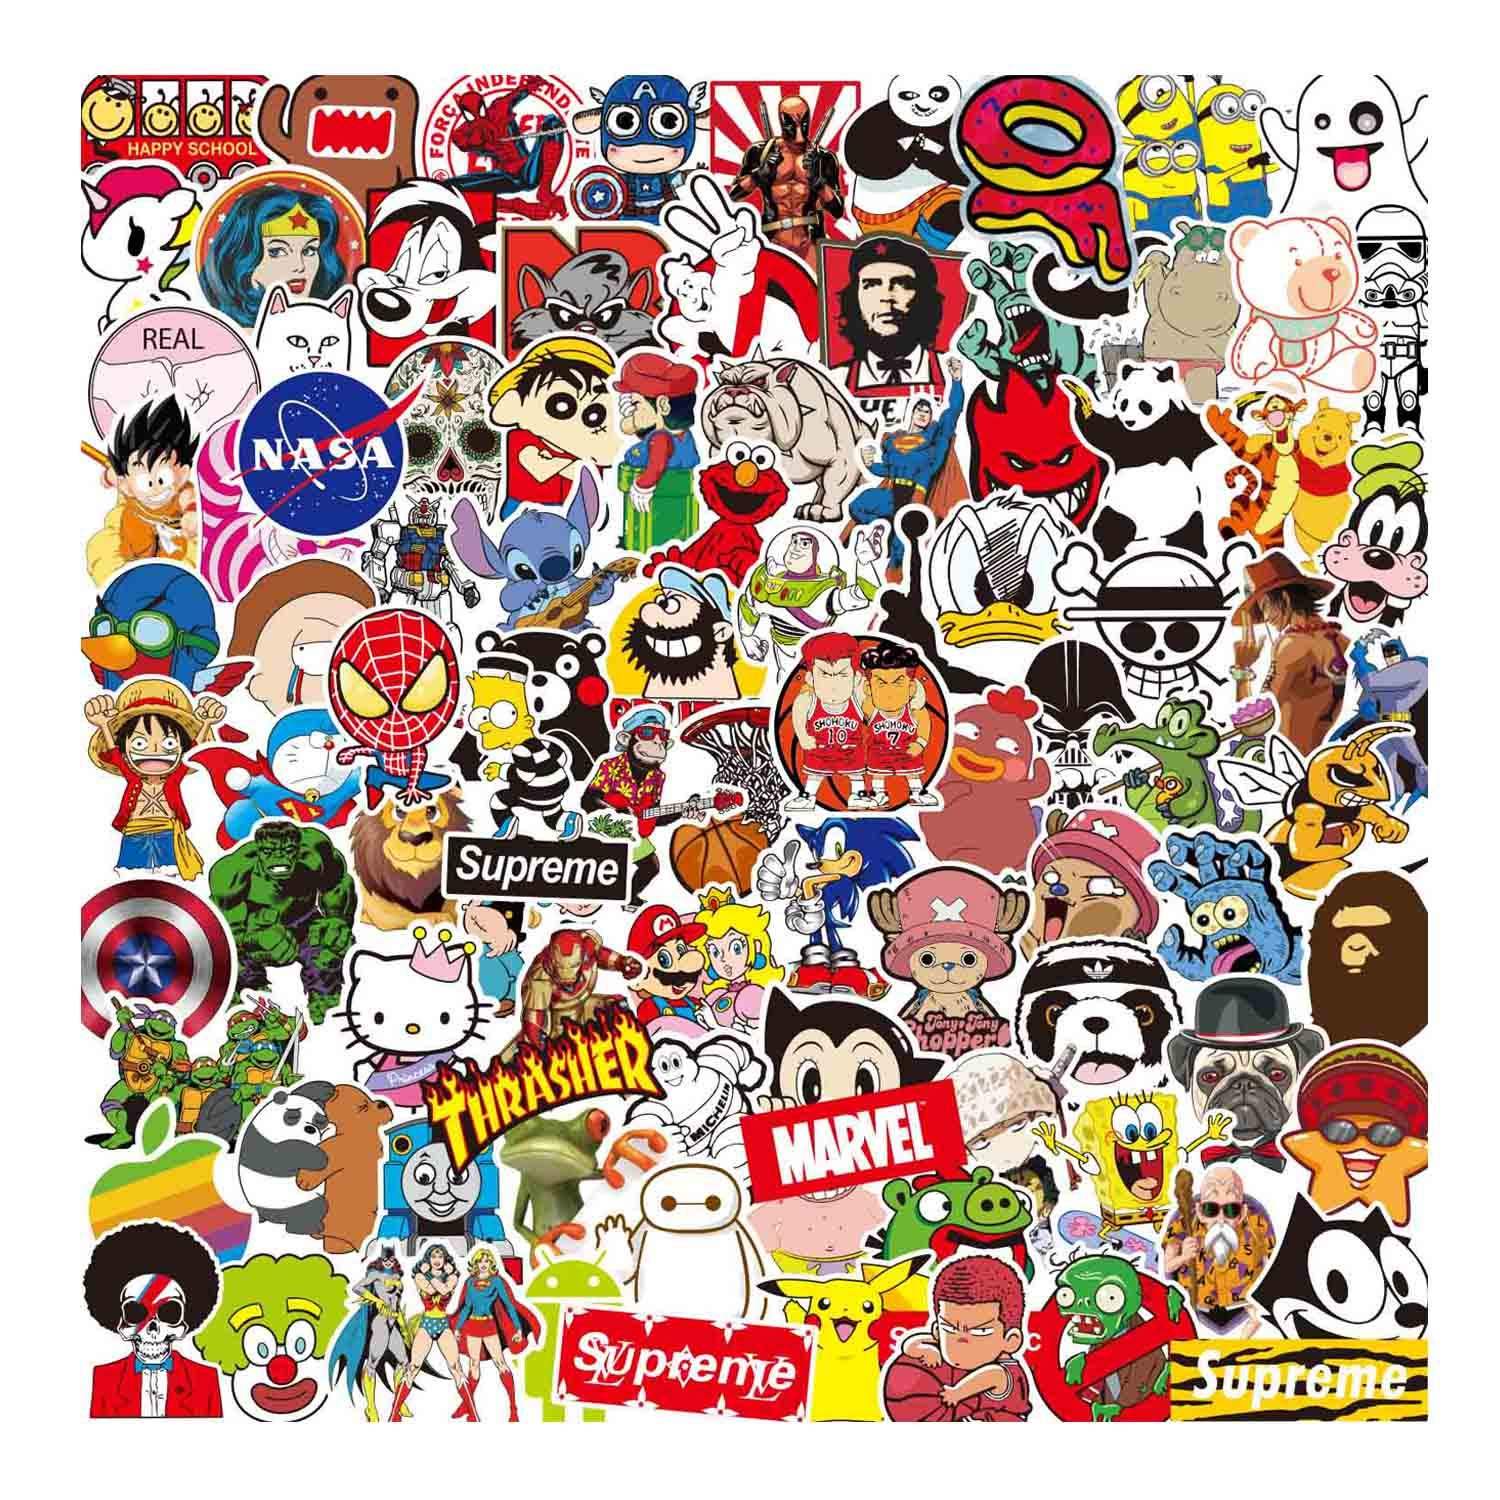 Sanmatic Sticker Pack 100 Pcs Original Cartoon Character Sticker Pack for Party Supplie Imagination Creating Teaching Bicycle Waterbottle Laptop Trunk Skateboard Personal Object Patches Stickers